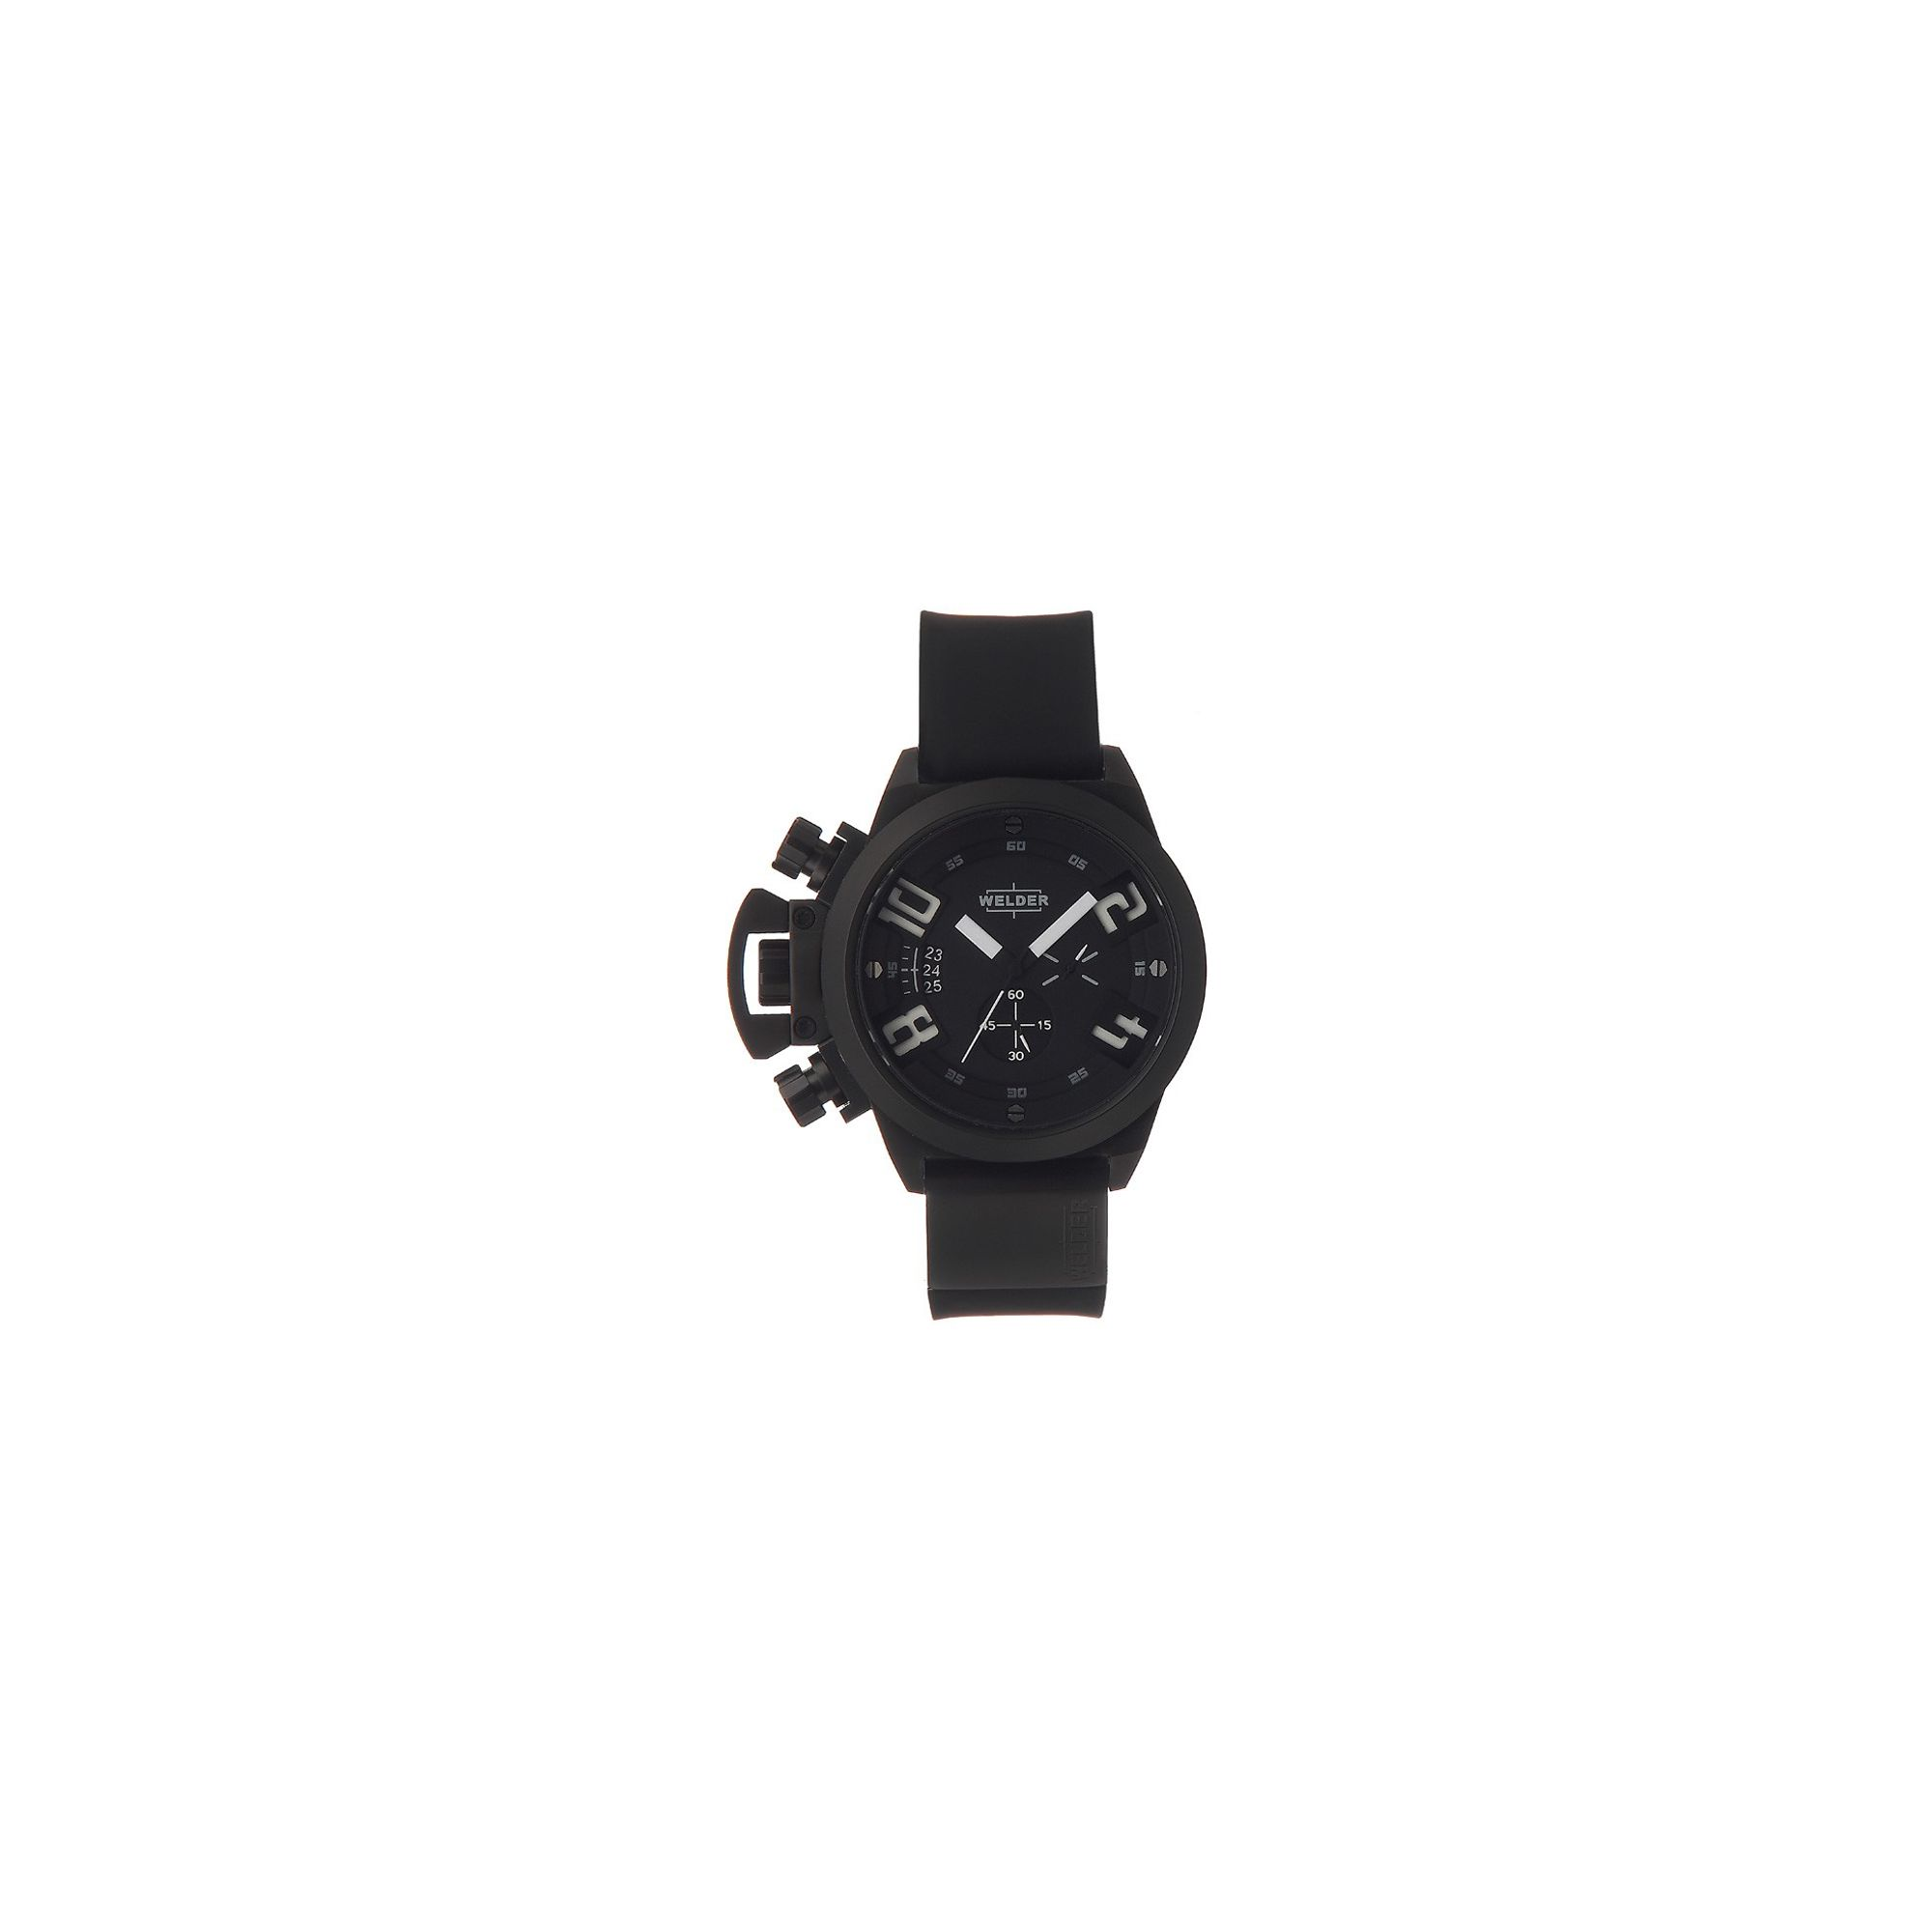 Welder Gents Black Dial Black Rubber Strap Watch K24-3301 at Tesco Direct